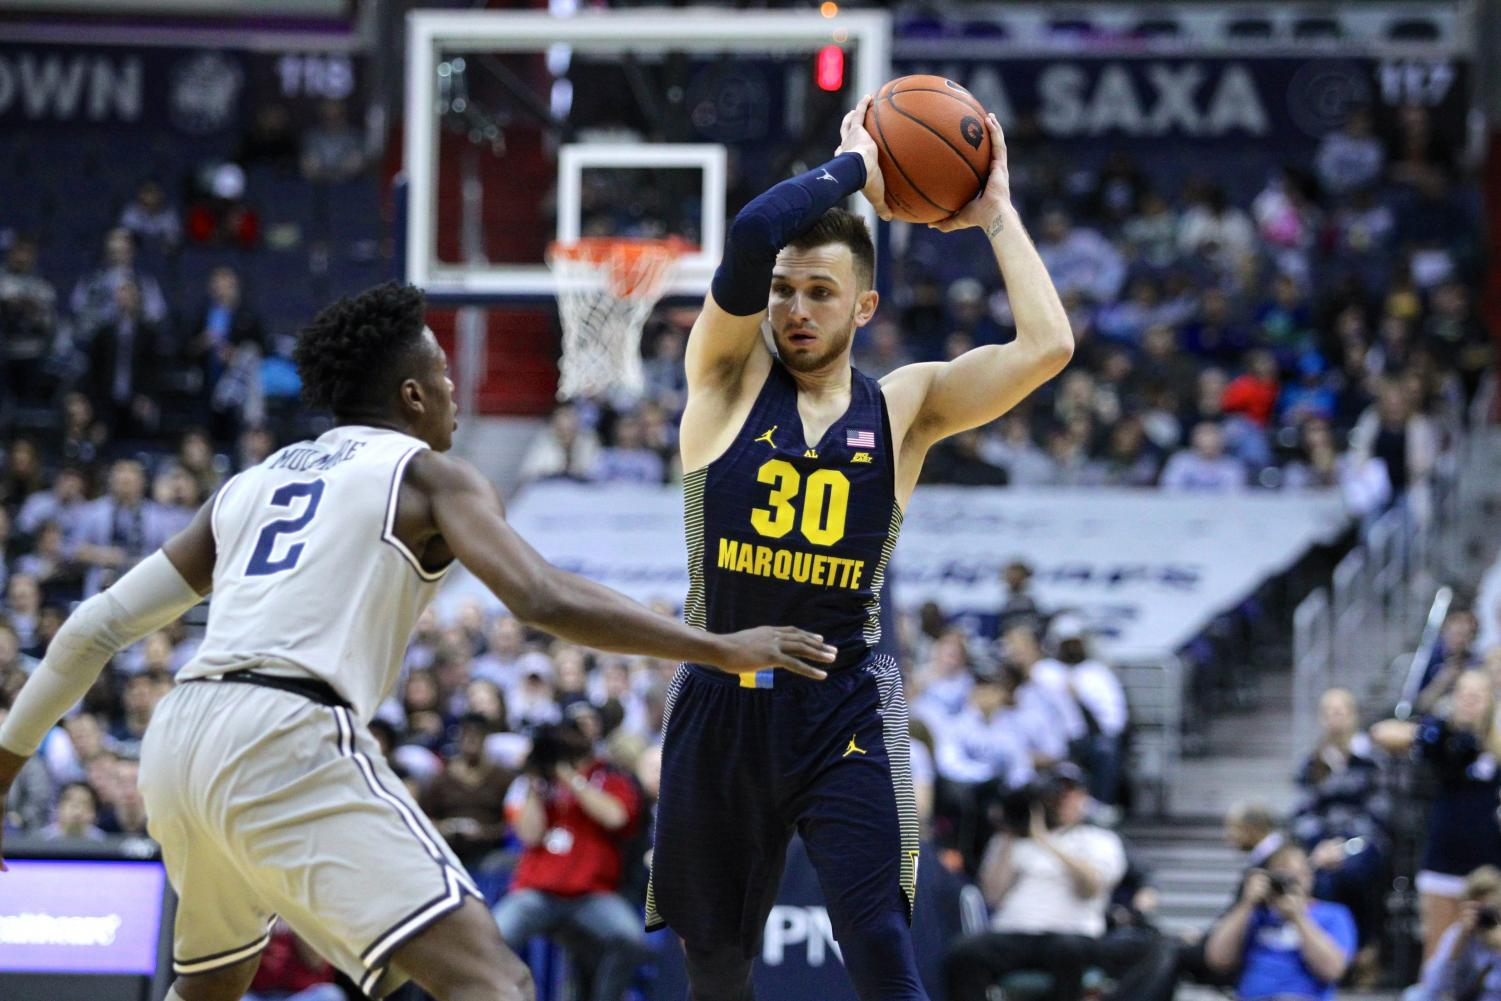 Andrew Rowsey scored 28 points and dished 10 assists in Marquette's win over Georgetown.